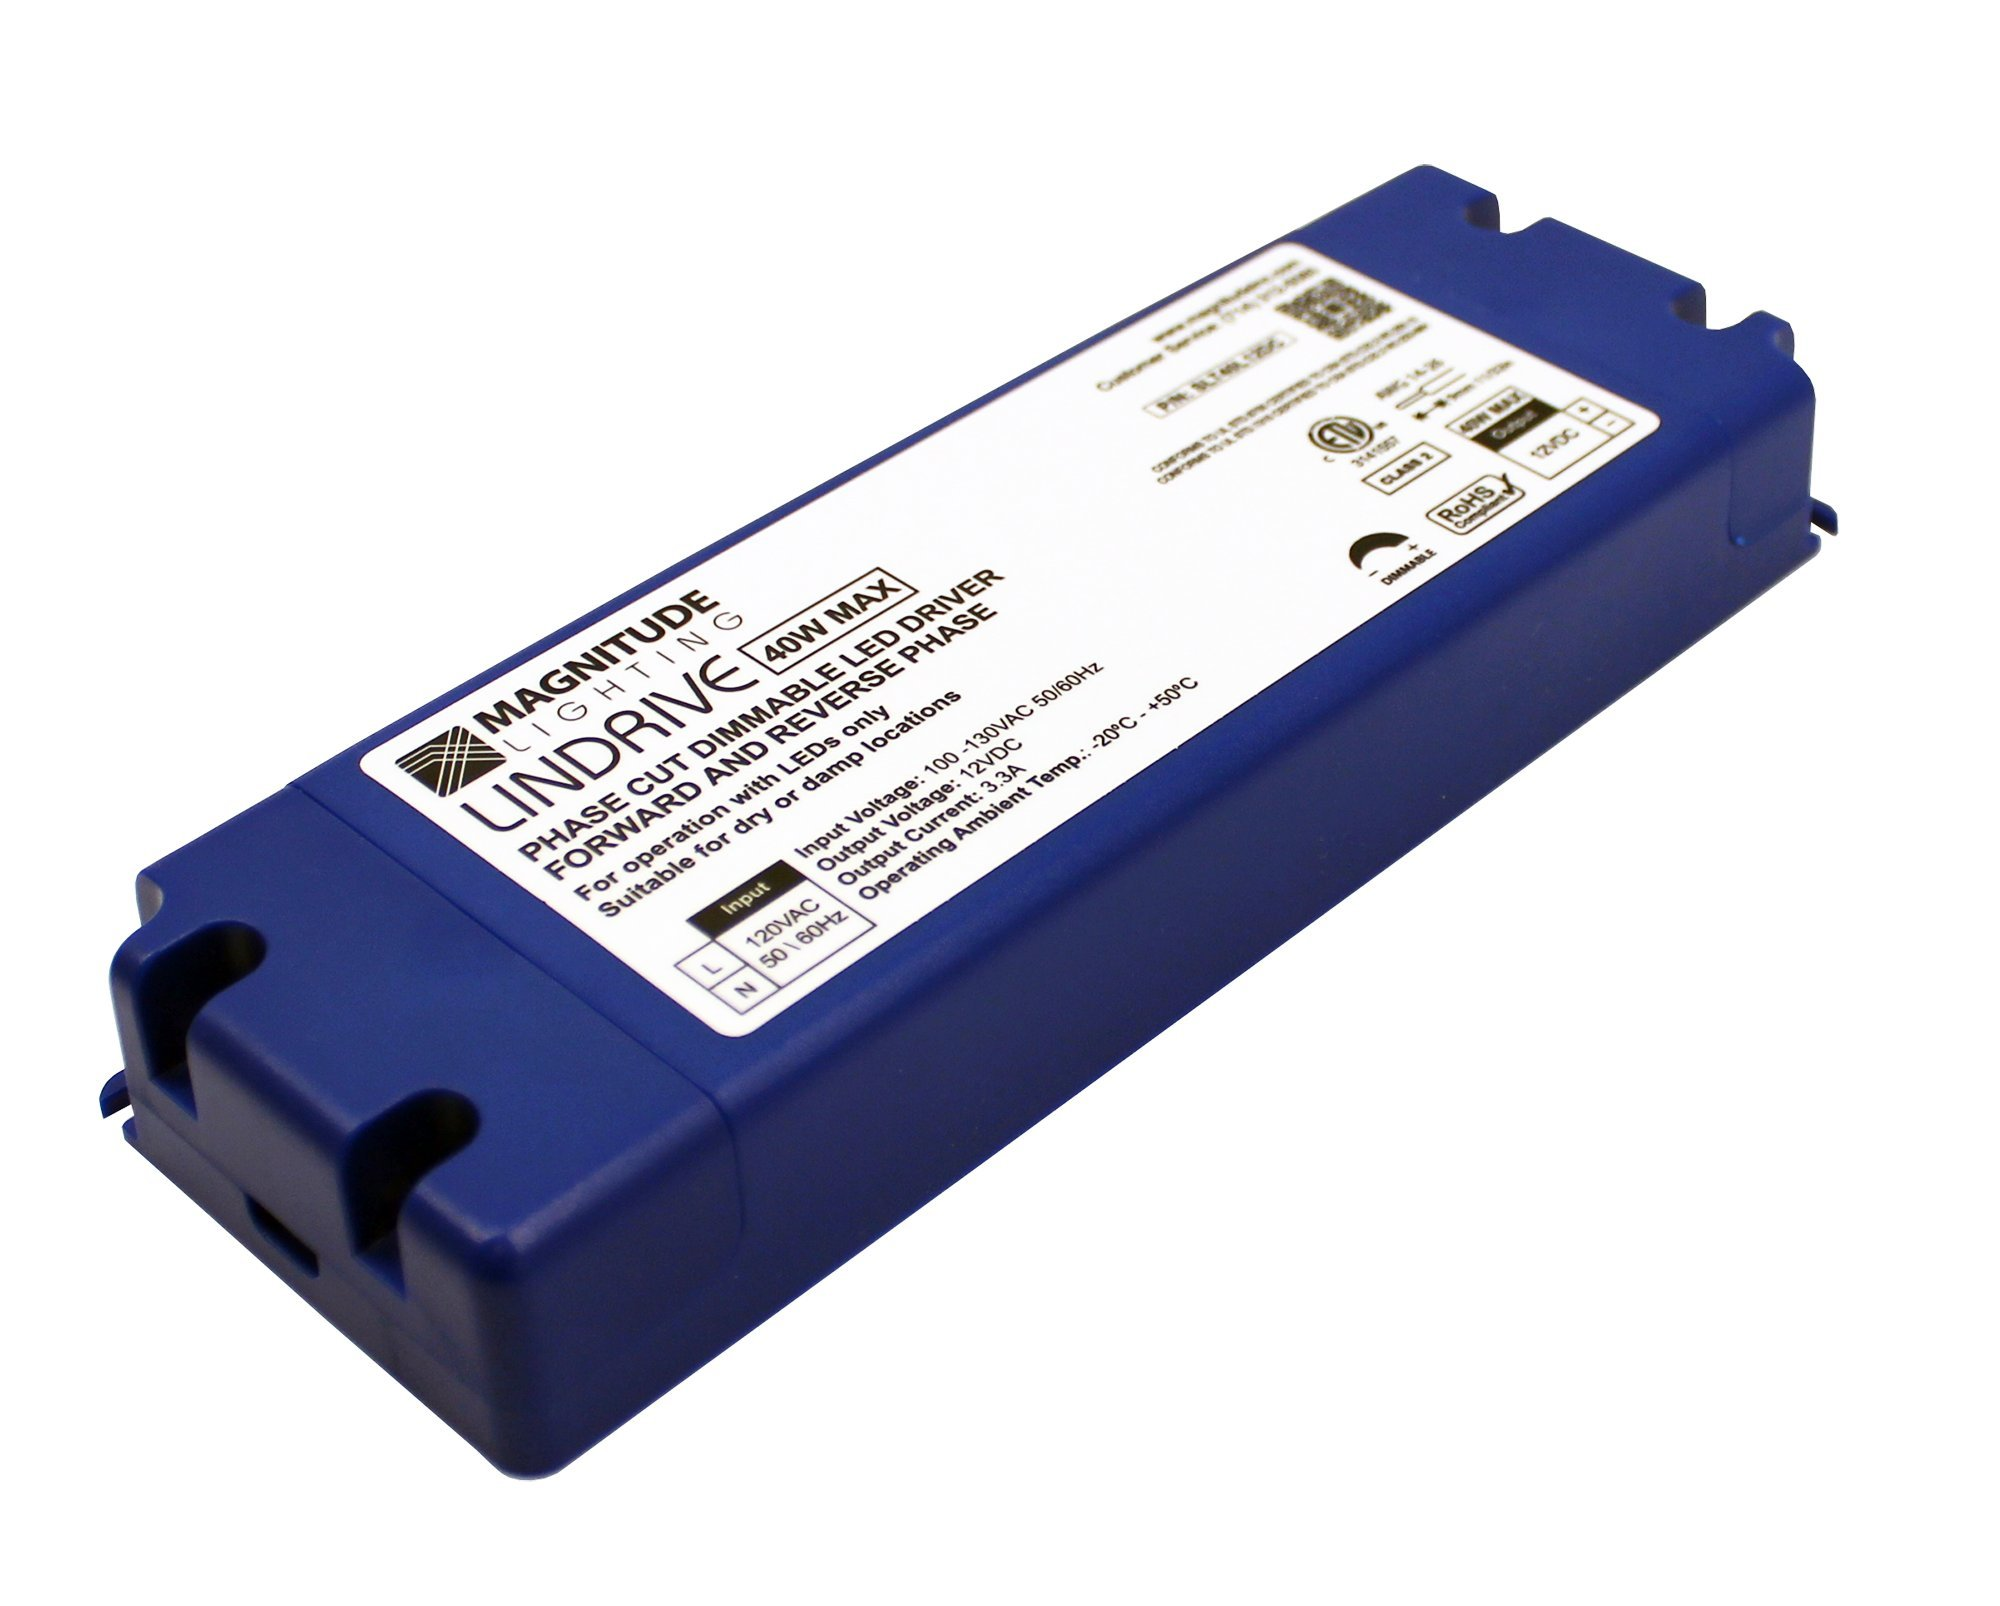 LED Driver - LINDRIVE - Magnitude 40W 12V LED Dimmable Transformer SLT40L12DC from Inspired LED Electronic Series